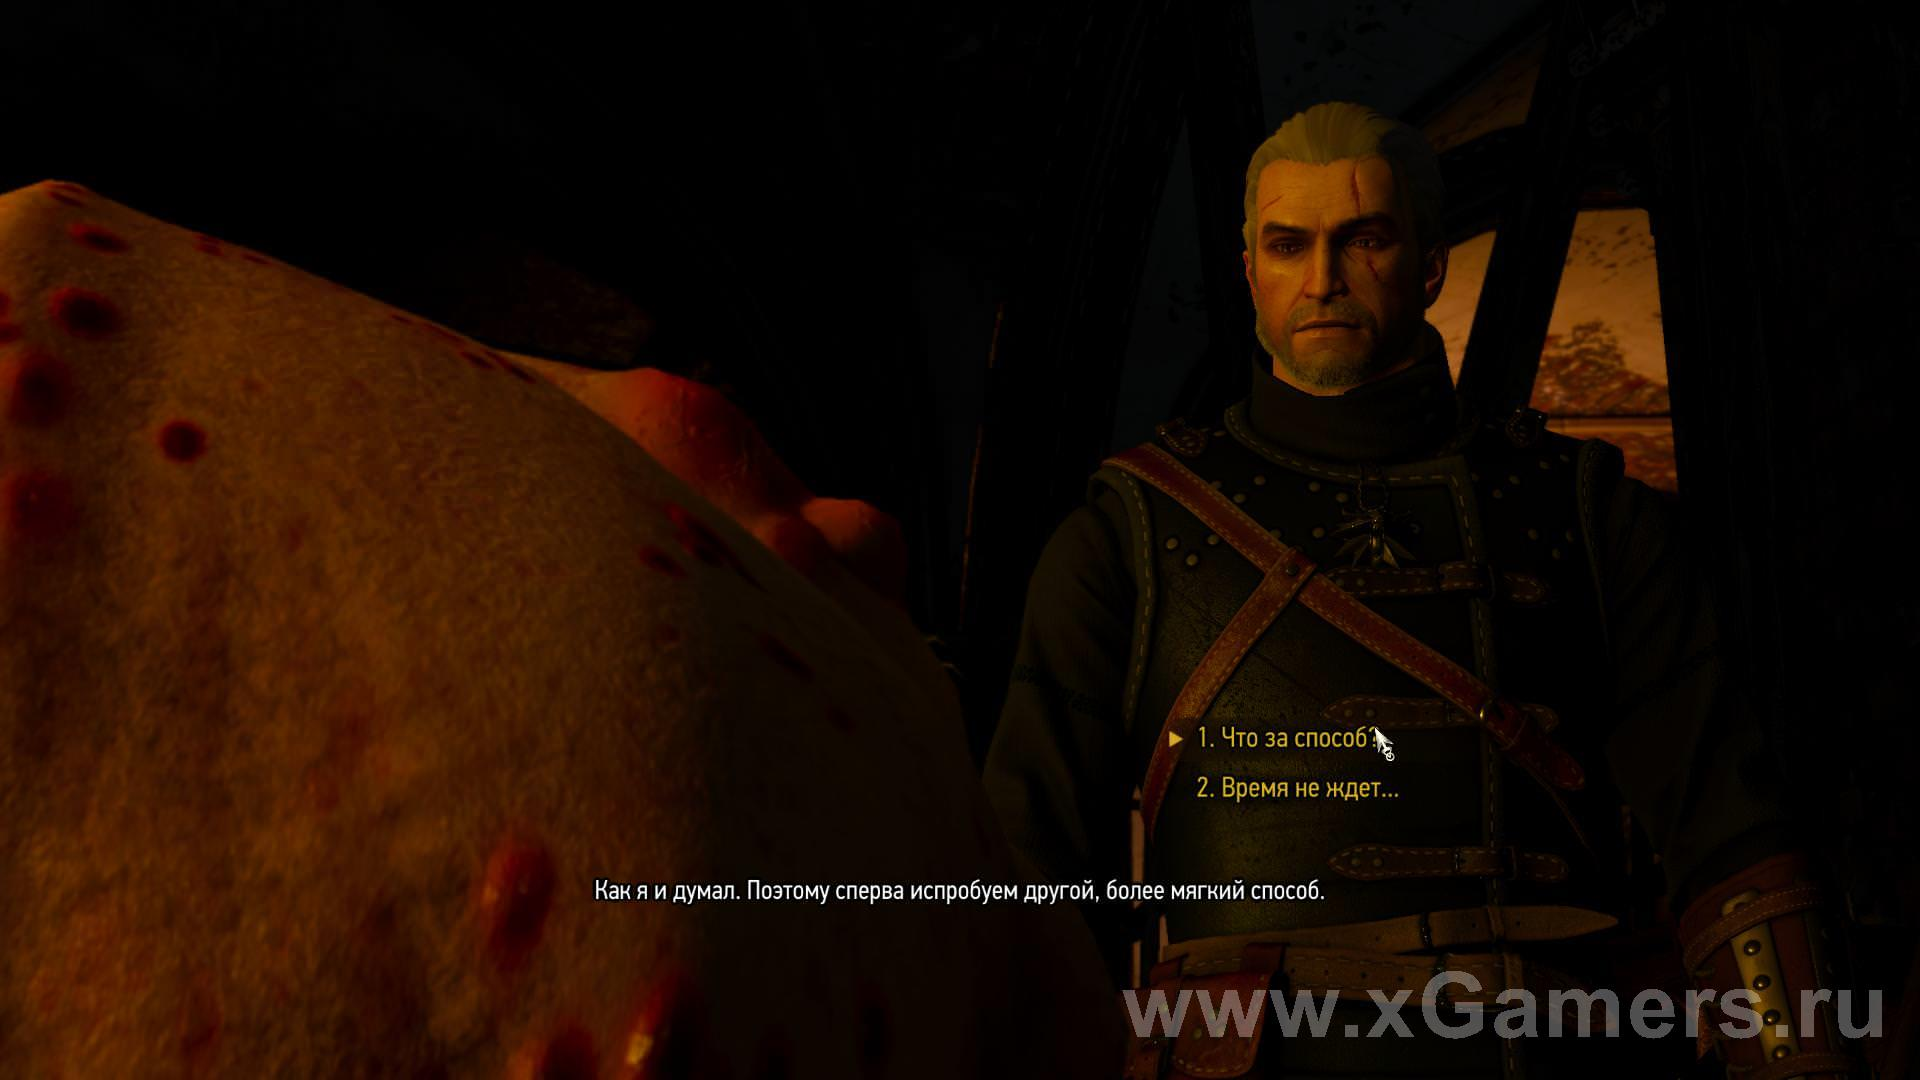 Quest: No Place Like Home - in The Witcher 3